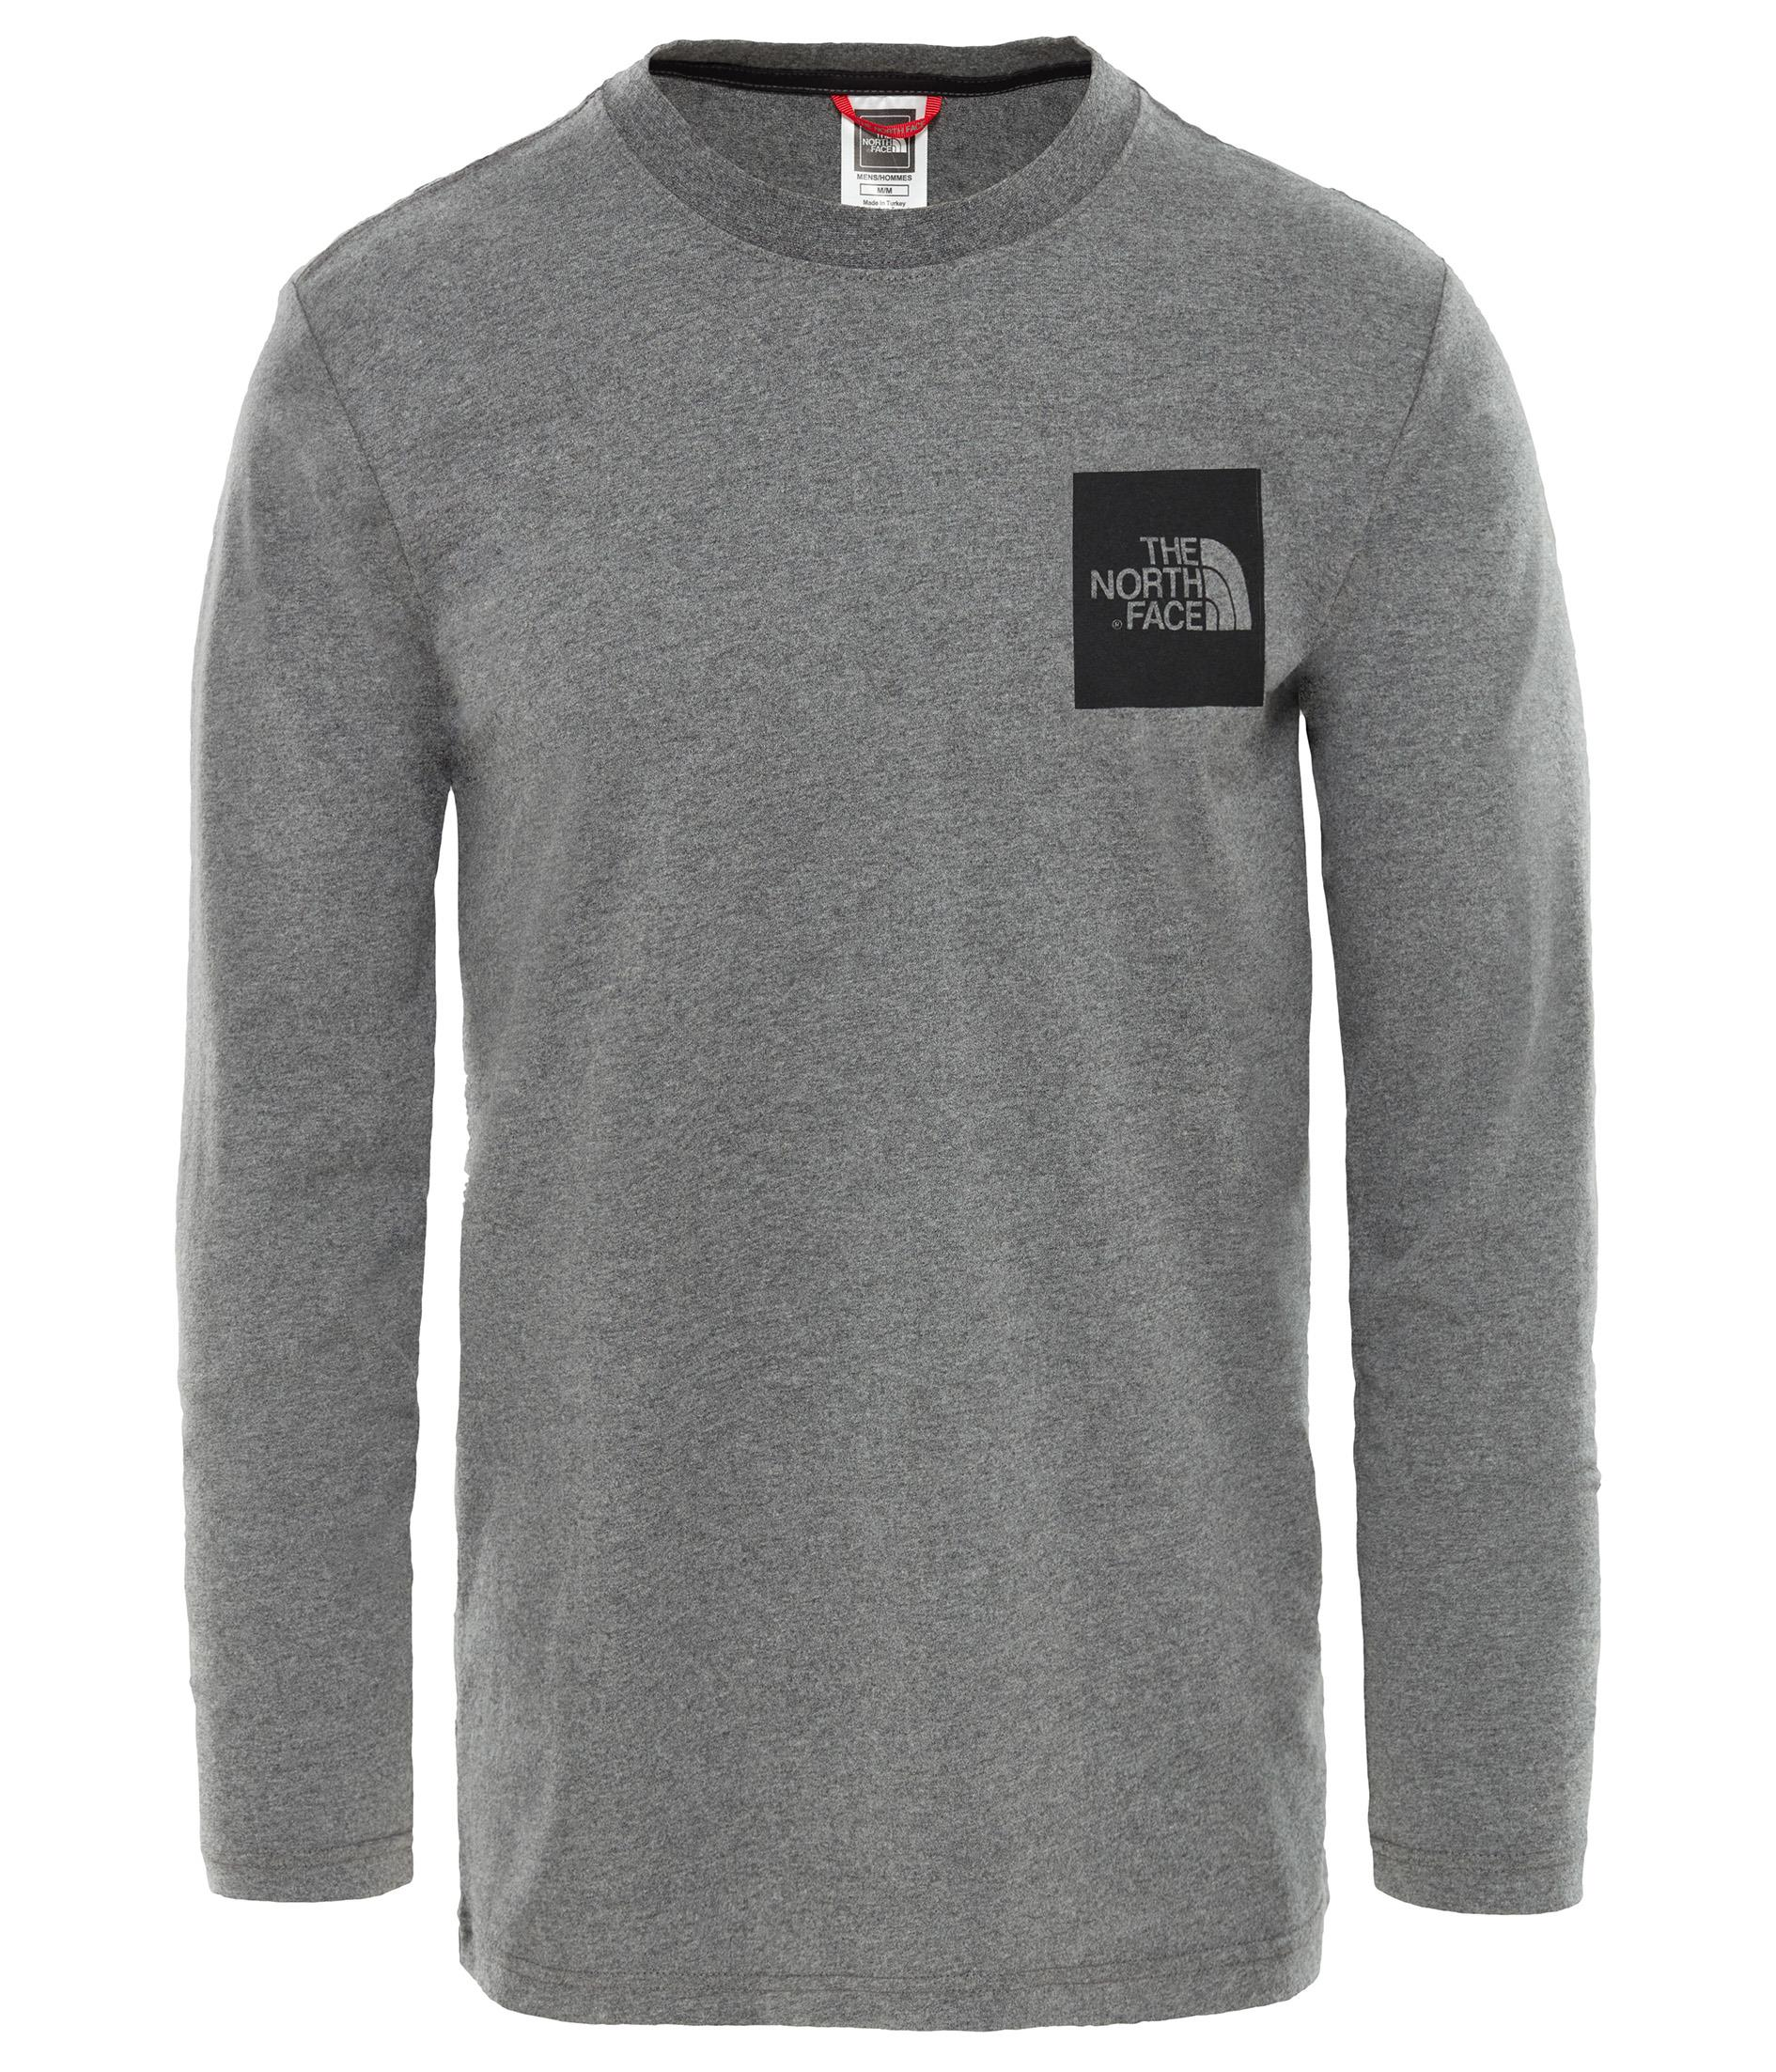 The North Face Erkek L/S Fıne Tee T-Shirt T937FTDYY